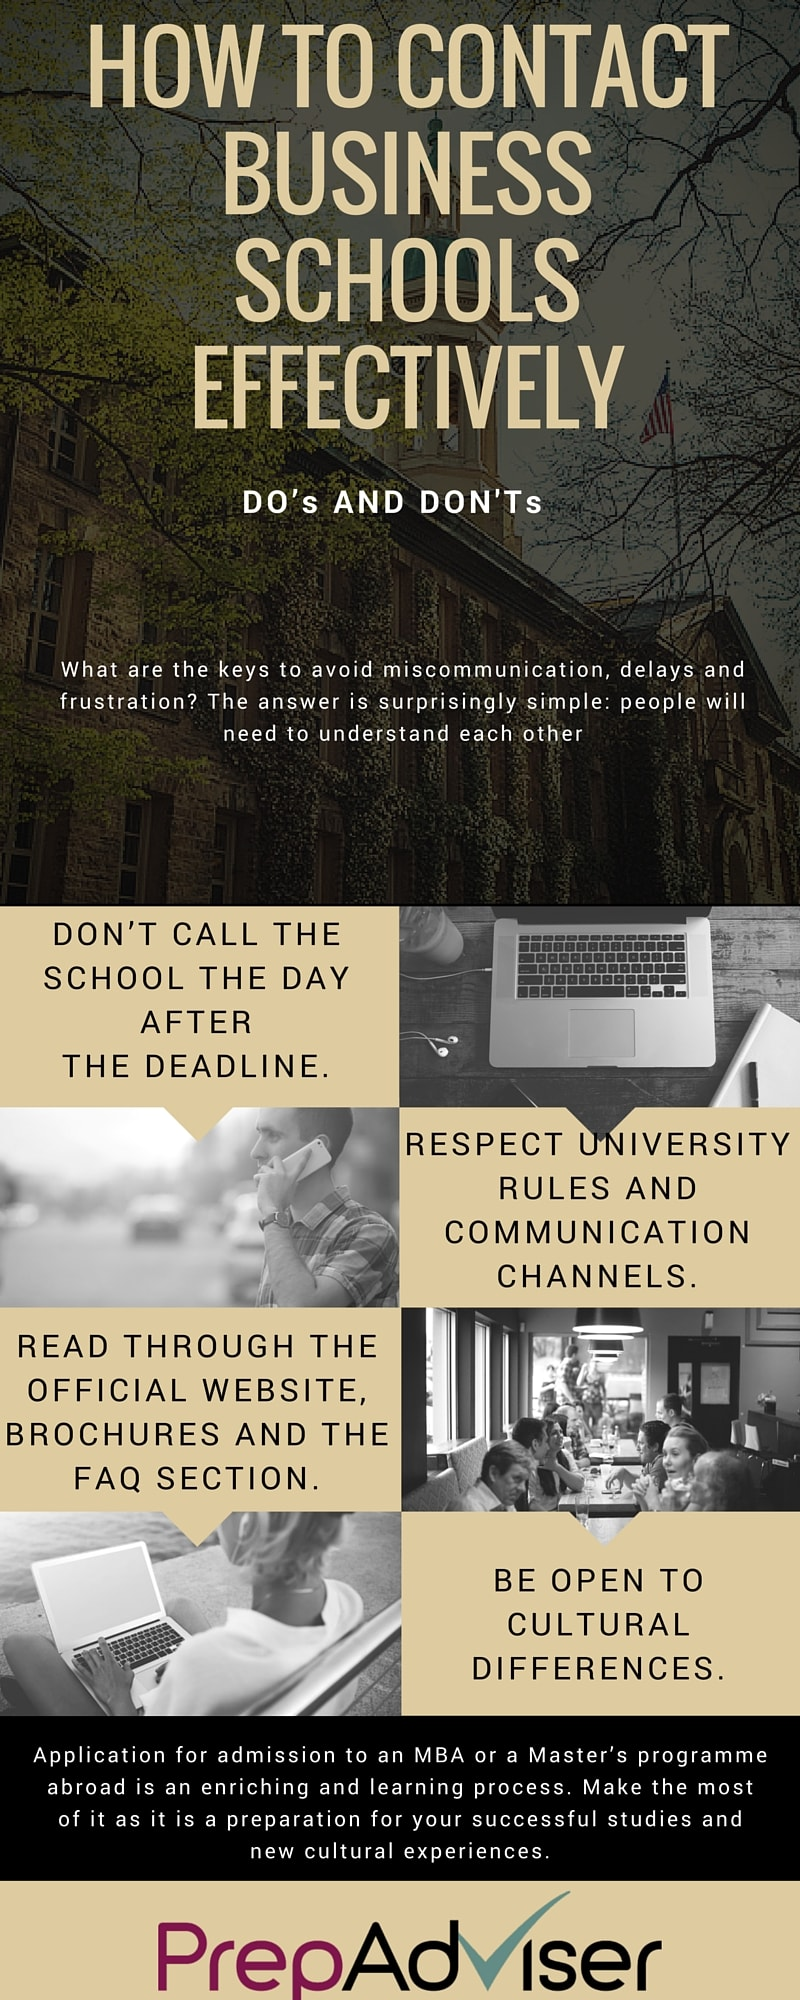 How to Contact Business Schools Effectively PrepAdviser Infographic